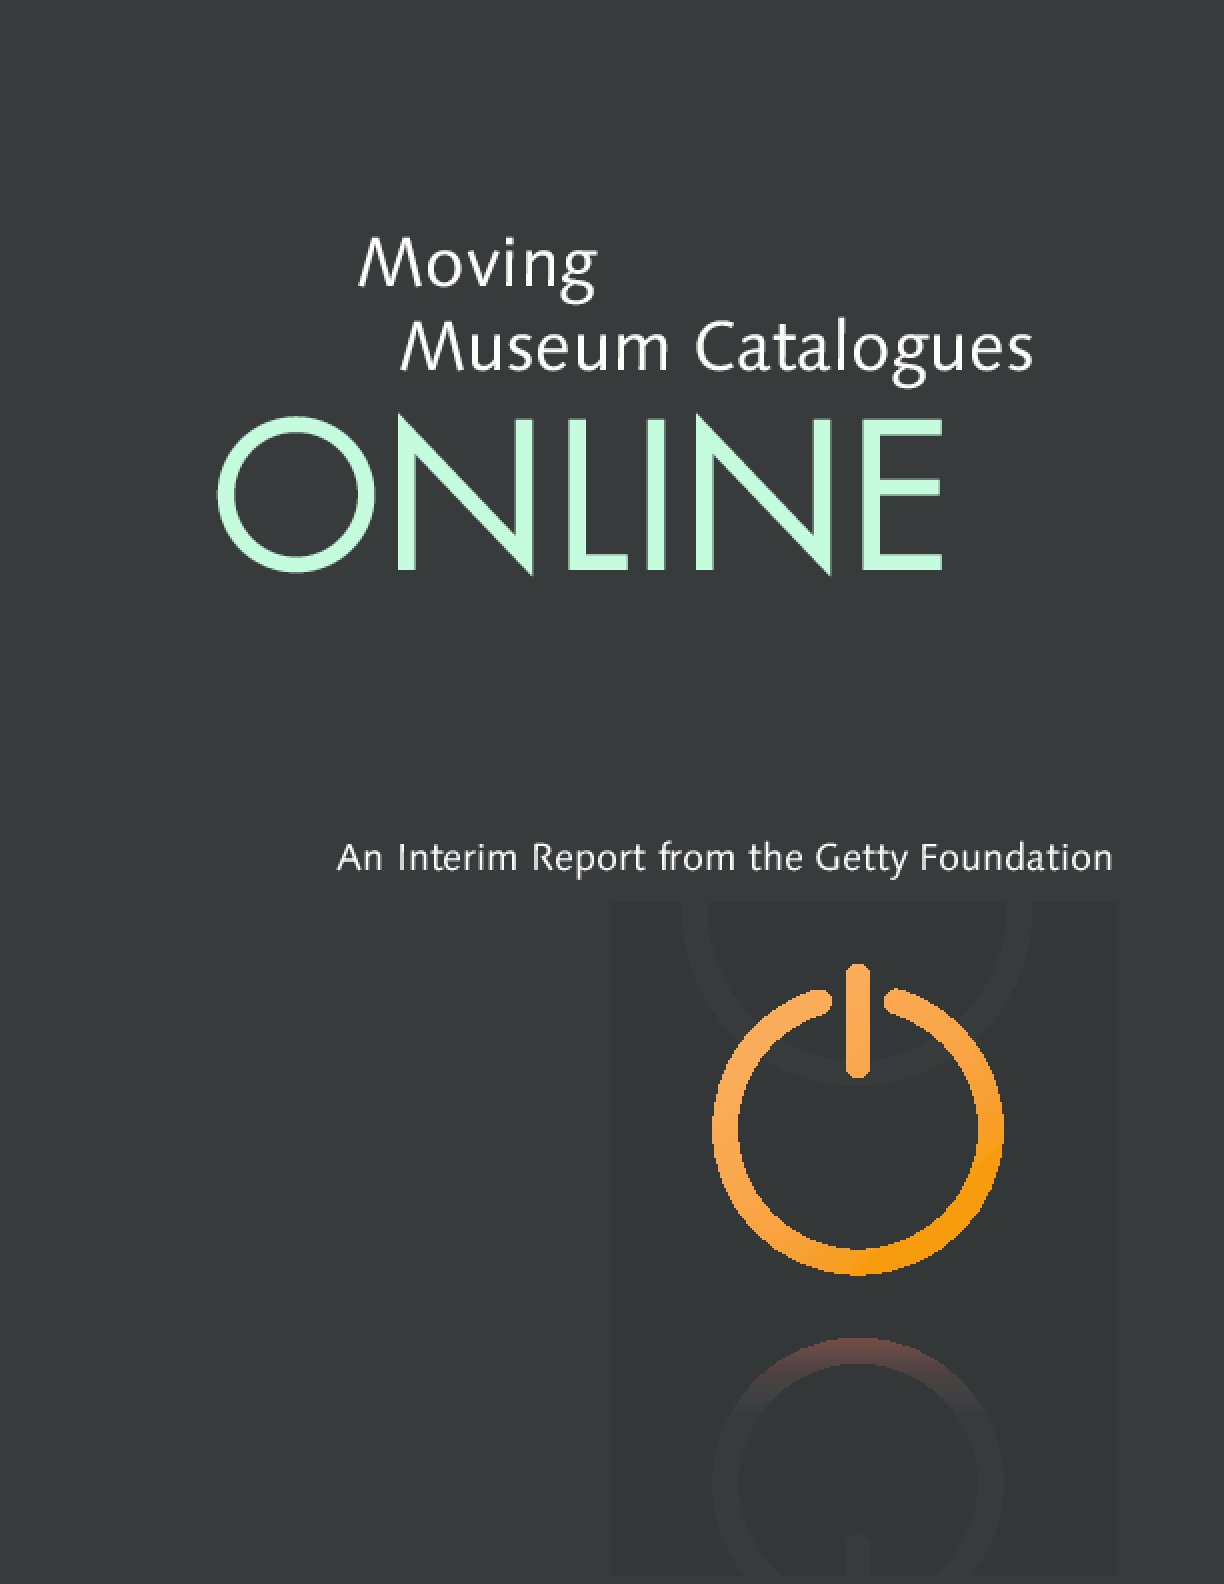 Moving Museum Catalogues: An Interim Report from the Getty Foundation